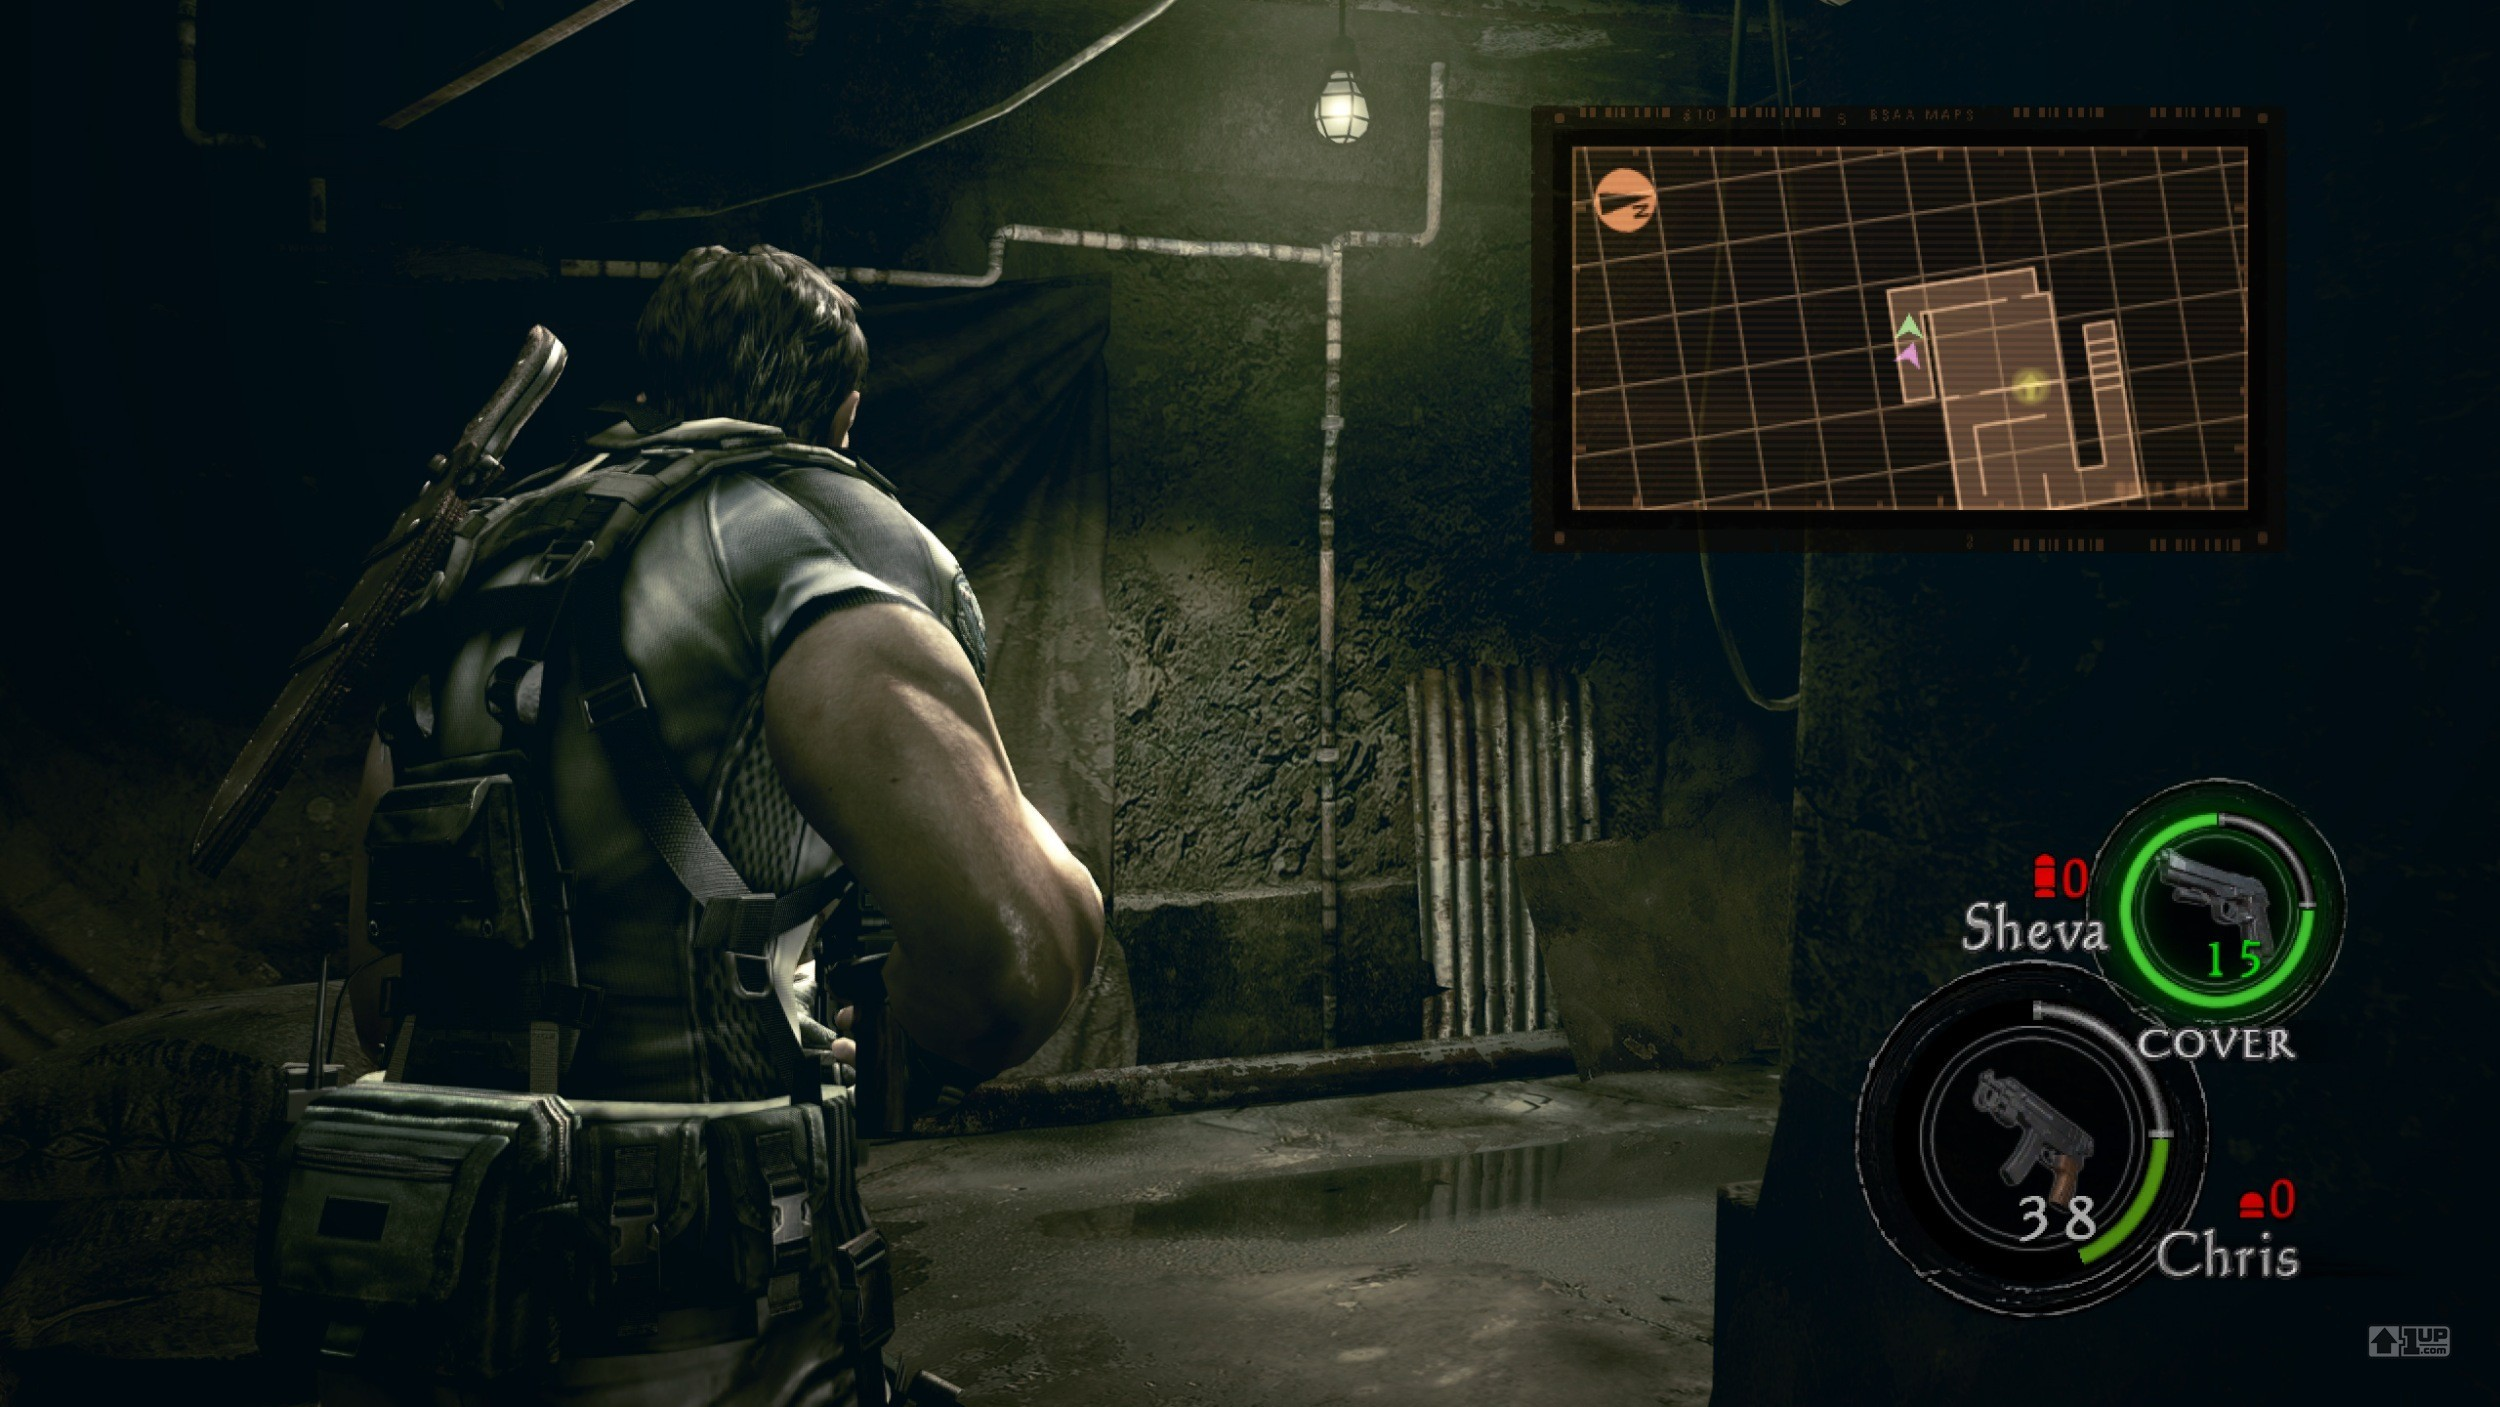 resident evil Chris redfield